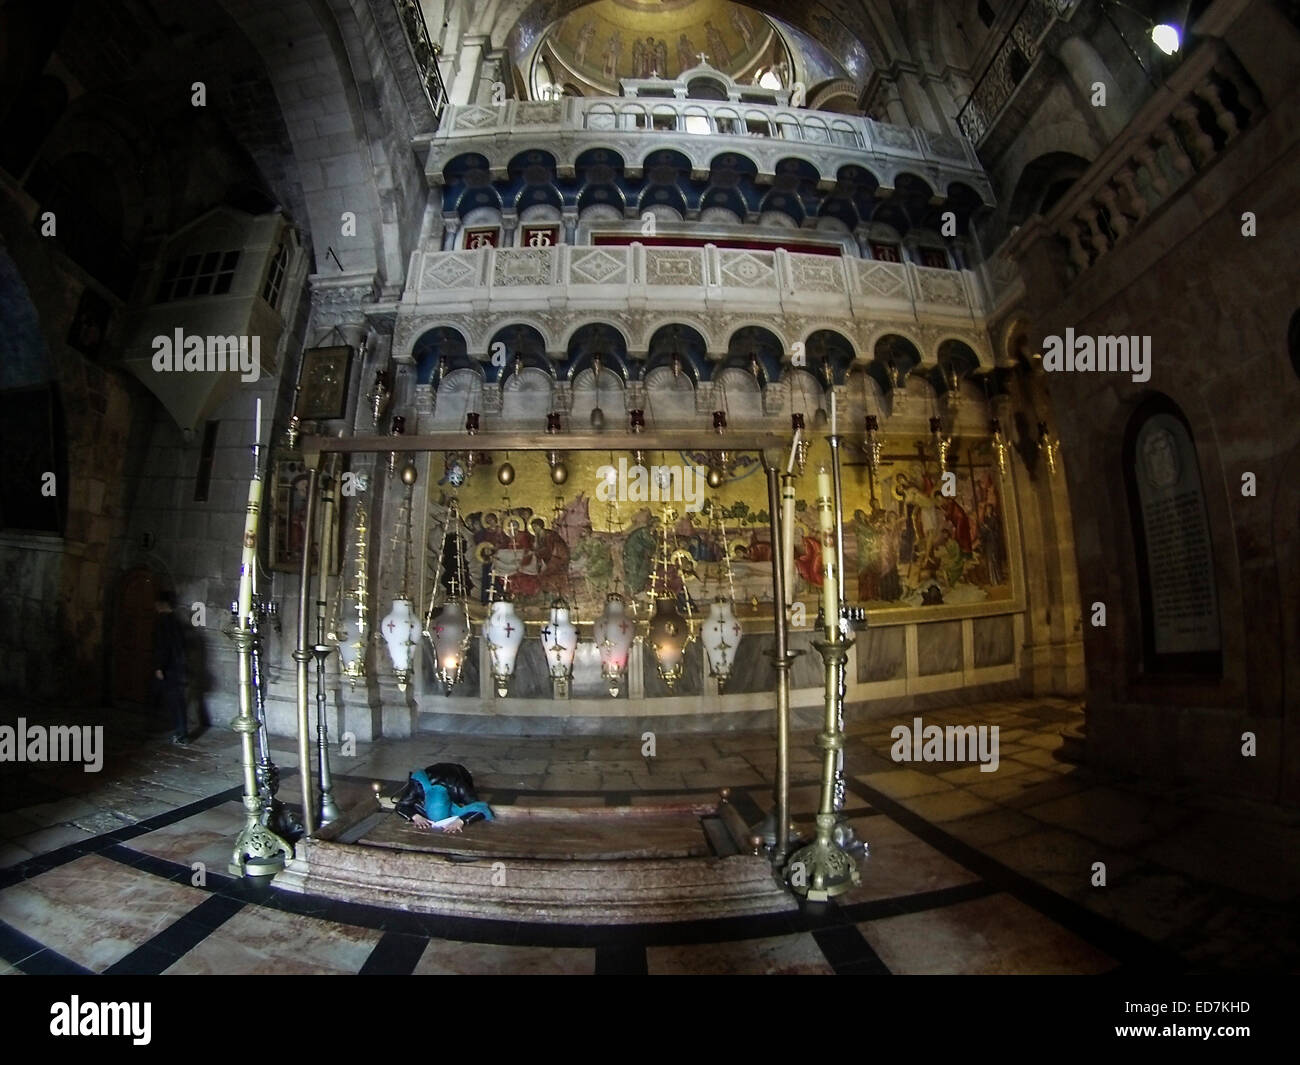 Prayer at entrance to The Church of the Holy Sepulchre, Old City, Jerusalem. - Stock Image